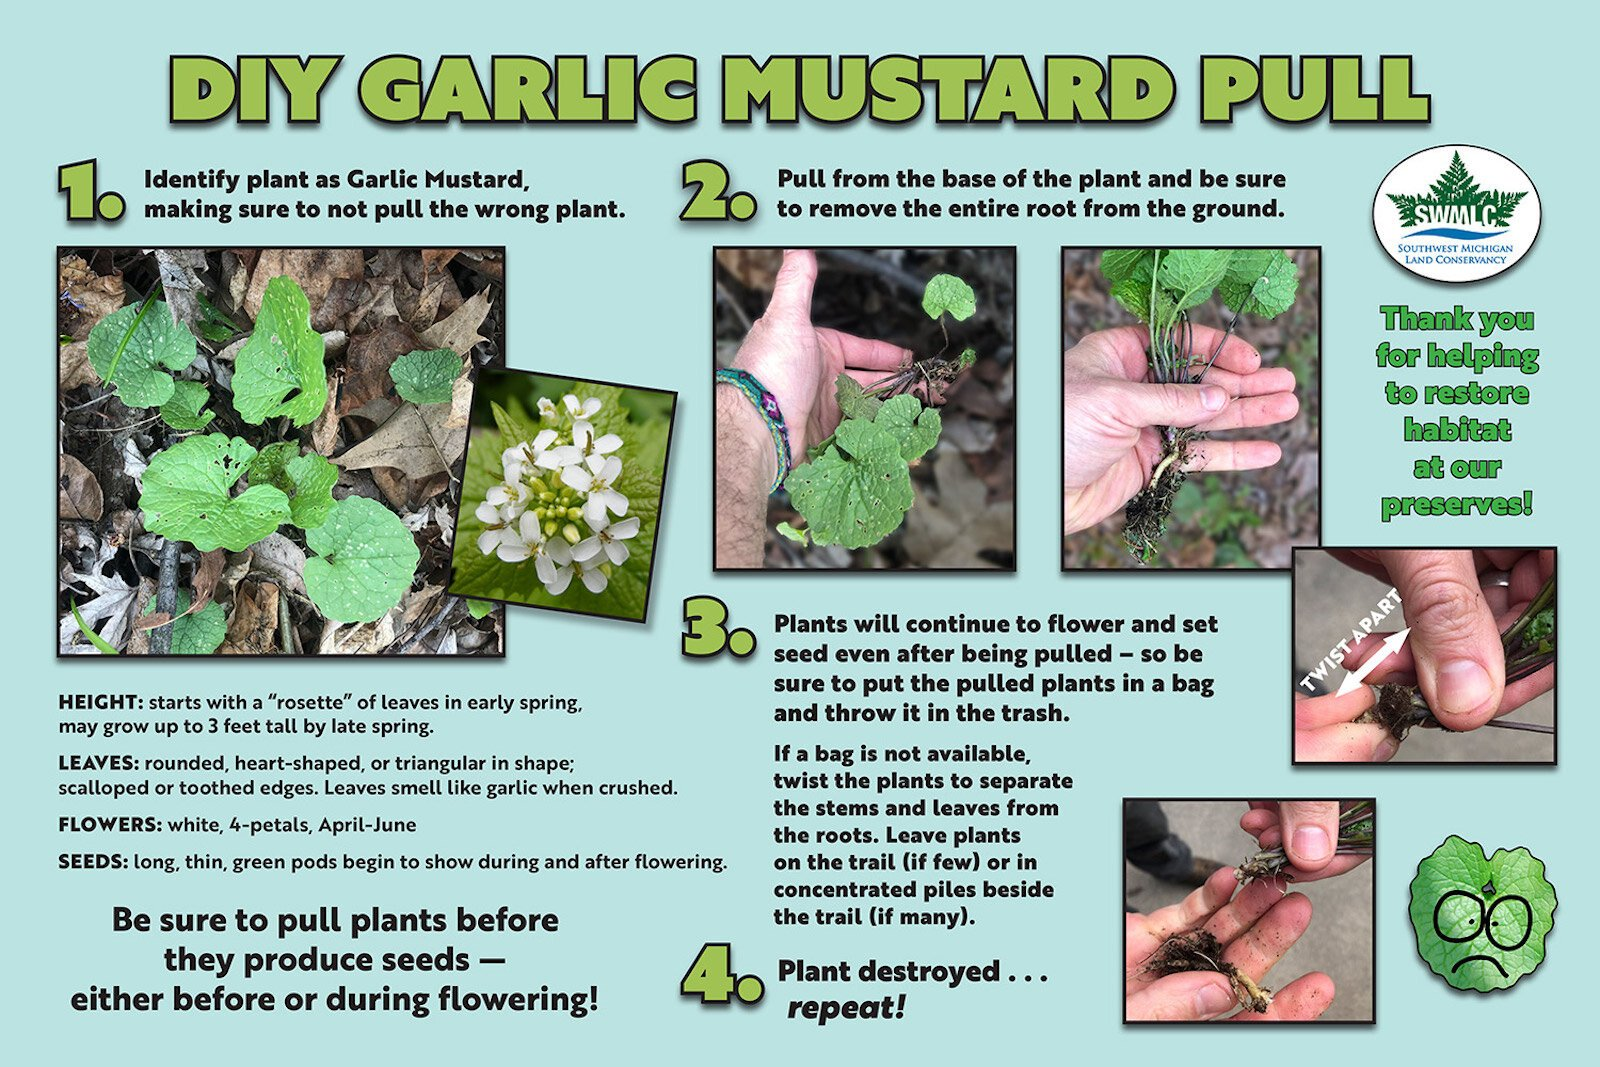 A guide on how to identify and pull garlic mustard weeds.